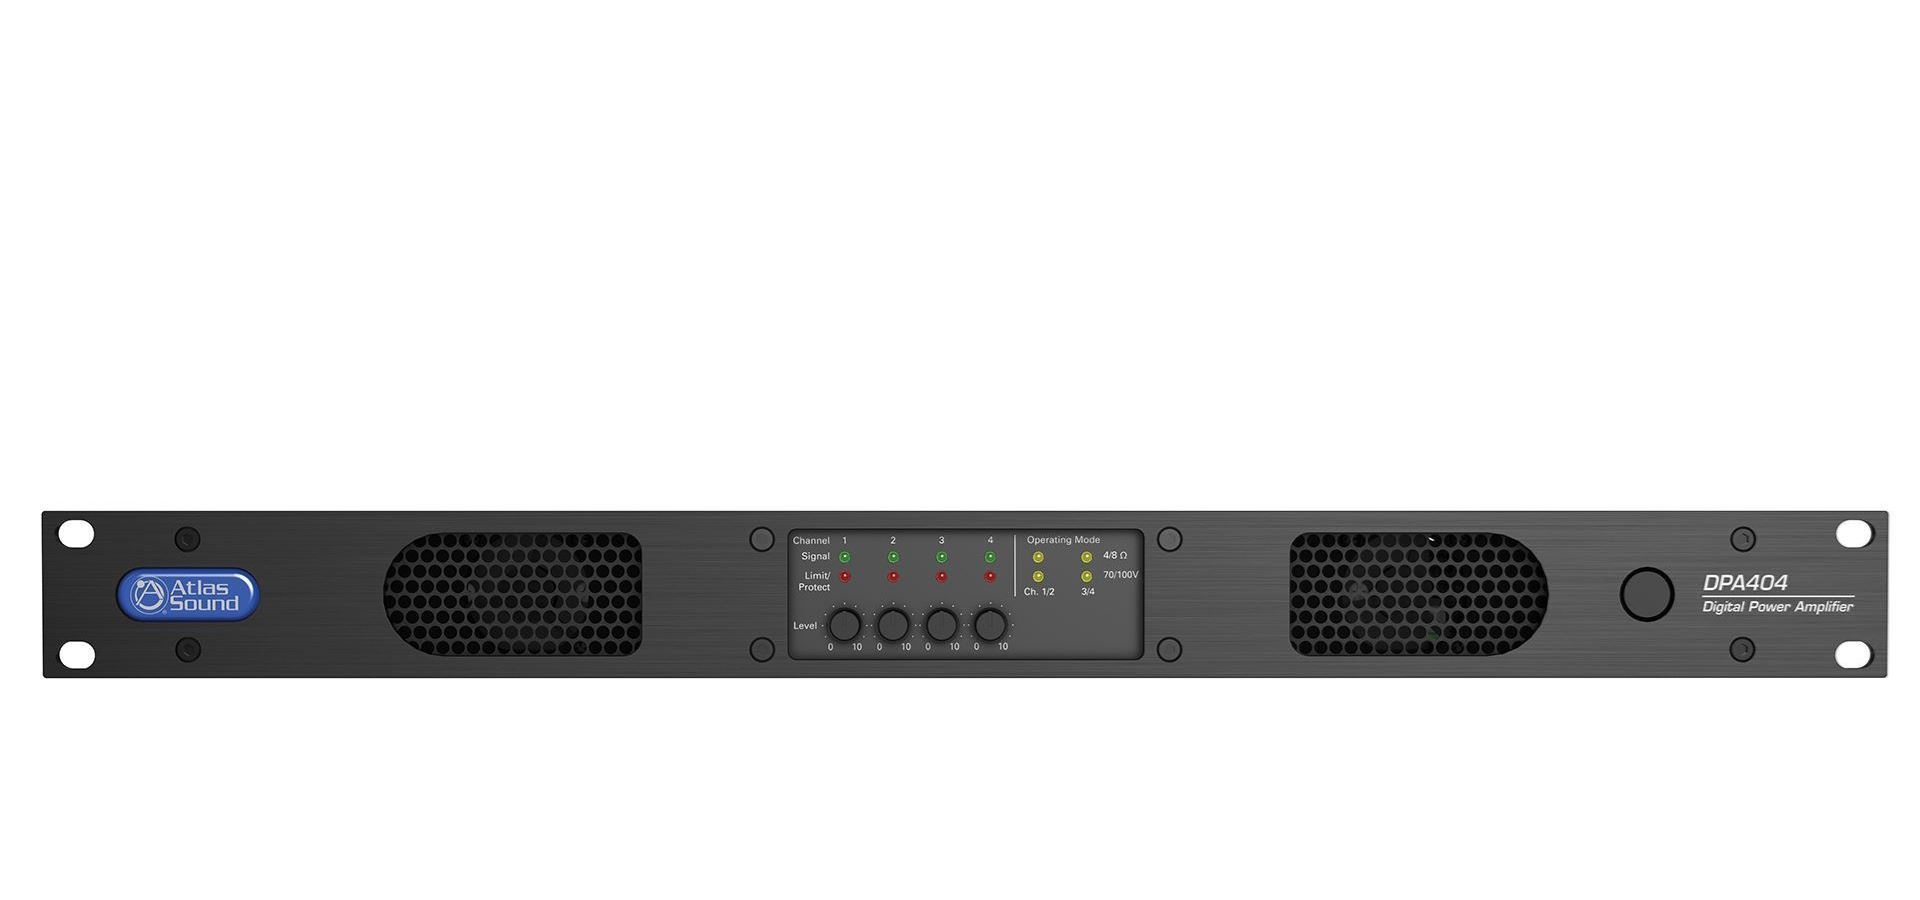 Multi Channel Network Enabled Amplifiers With Integrated Digital Lowpower Amplifier Volume Control Amp Circuit Diagram 400 Watt Networkable 4 Power Optional Dante Audio